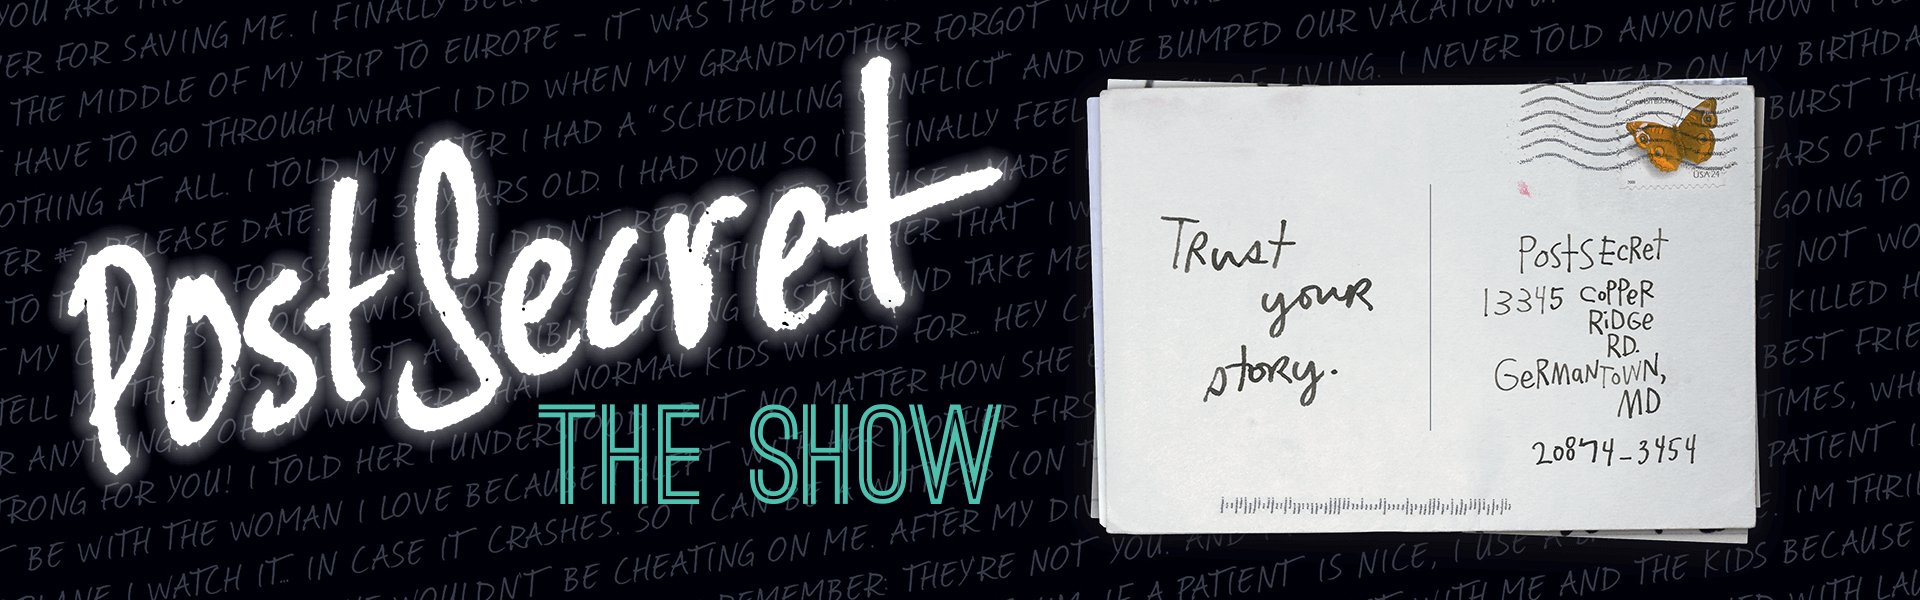 postsecret the show youth series matinee purdue convocations